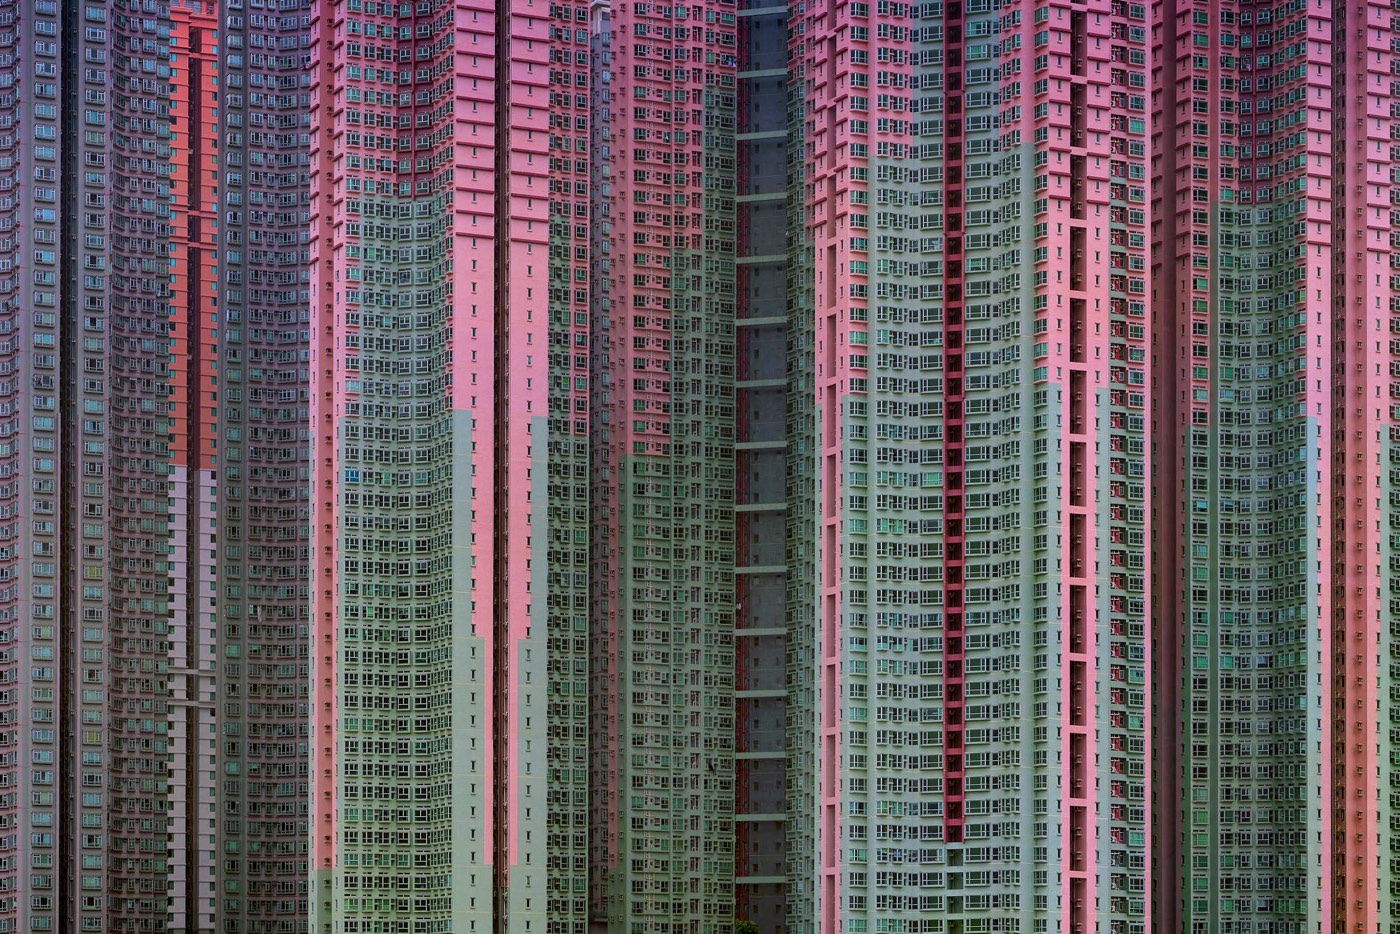 The dazzling and depressing architecture of density in megacities